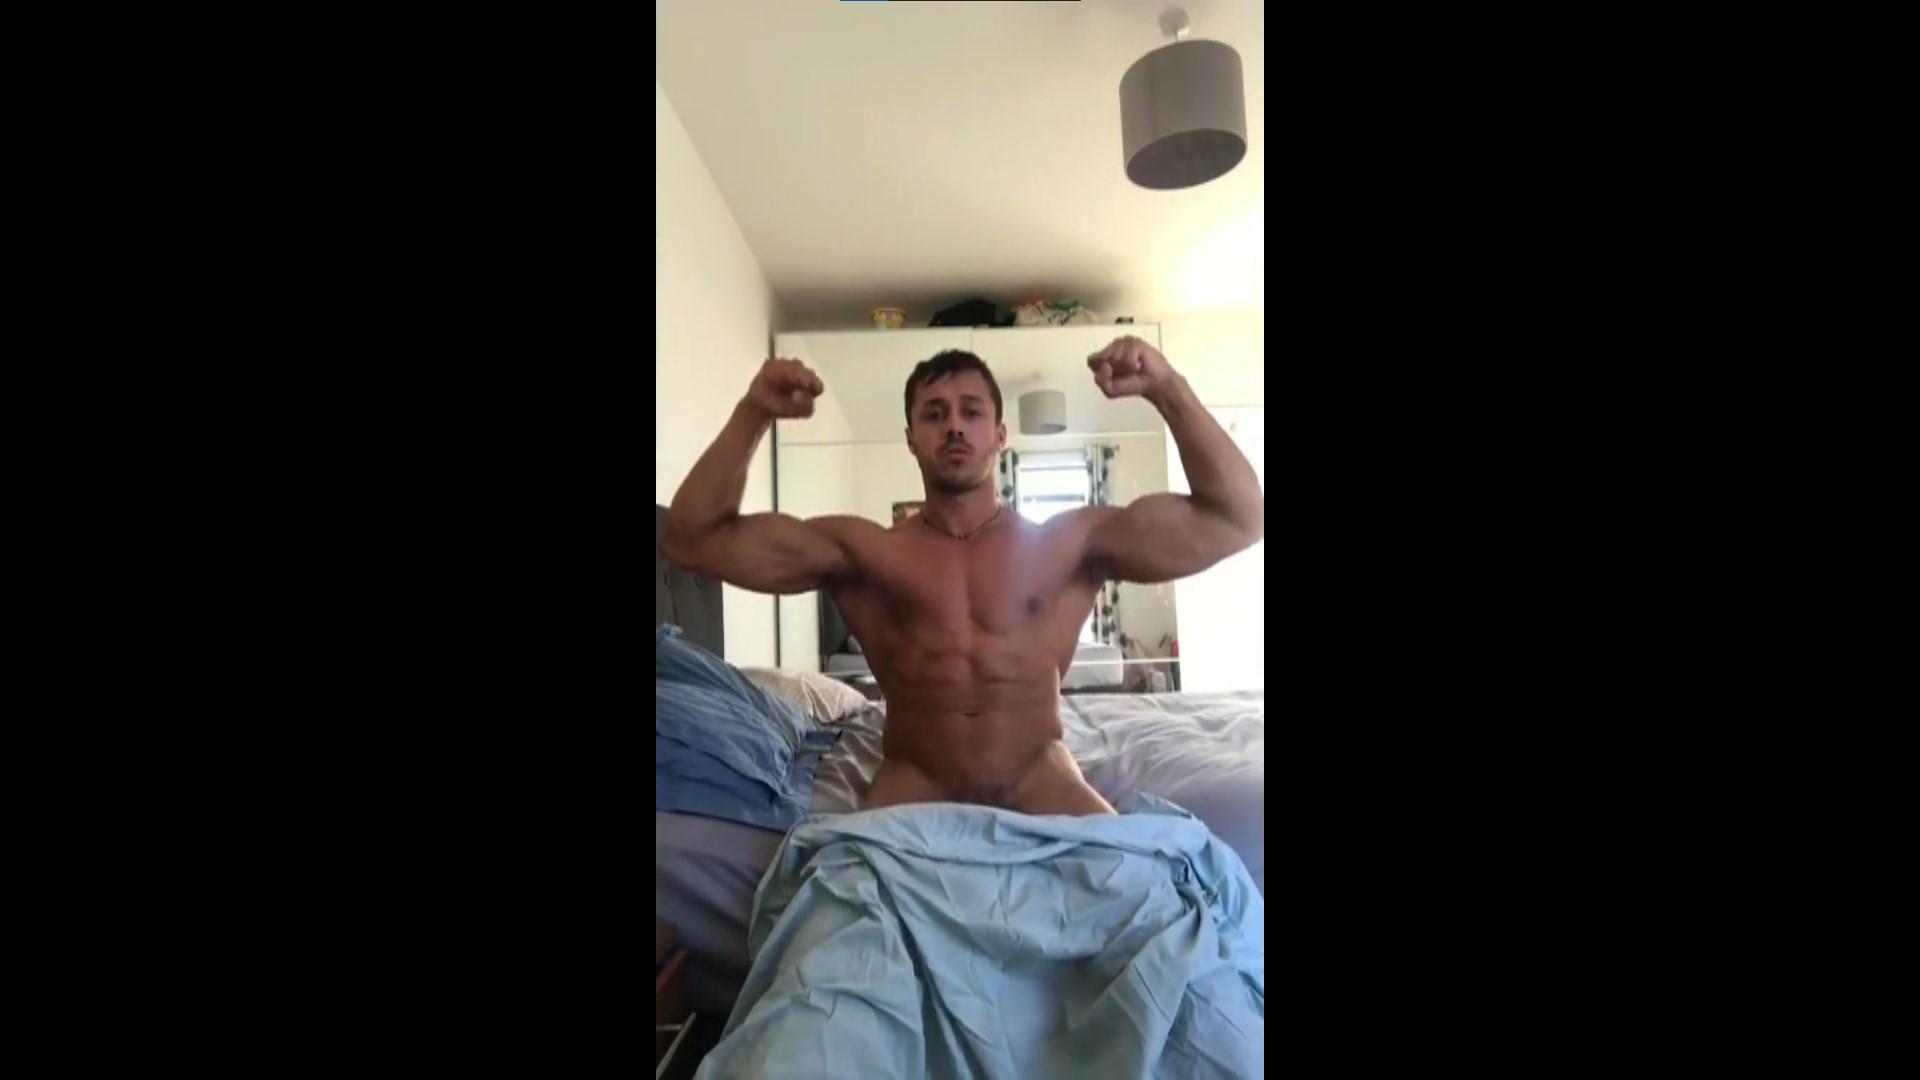 Showing off my body and being a tease - Diego Barros